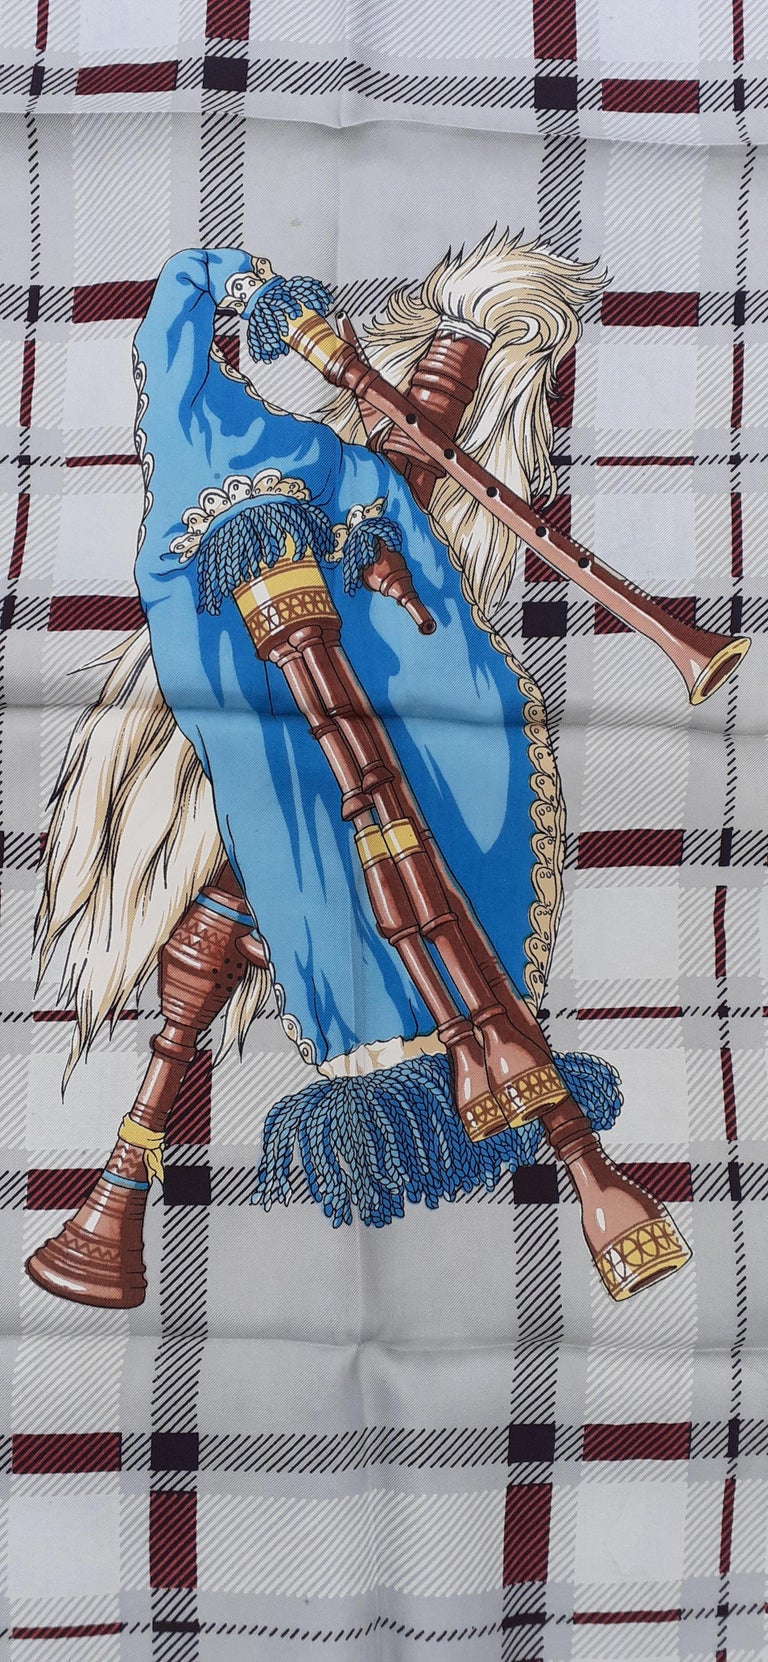 Extremely Rare Authentic Hermès Scarf  Pattern: Bagpipe (Cornemuse)  The drawing shows in its center a bagpipe, surrounded by 4 hands each holding a flower, emblem of the countries of the United Kingdom: Rose for England, Clover for Northern